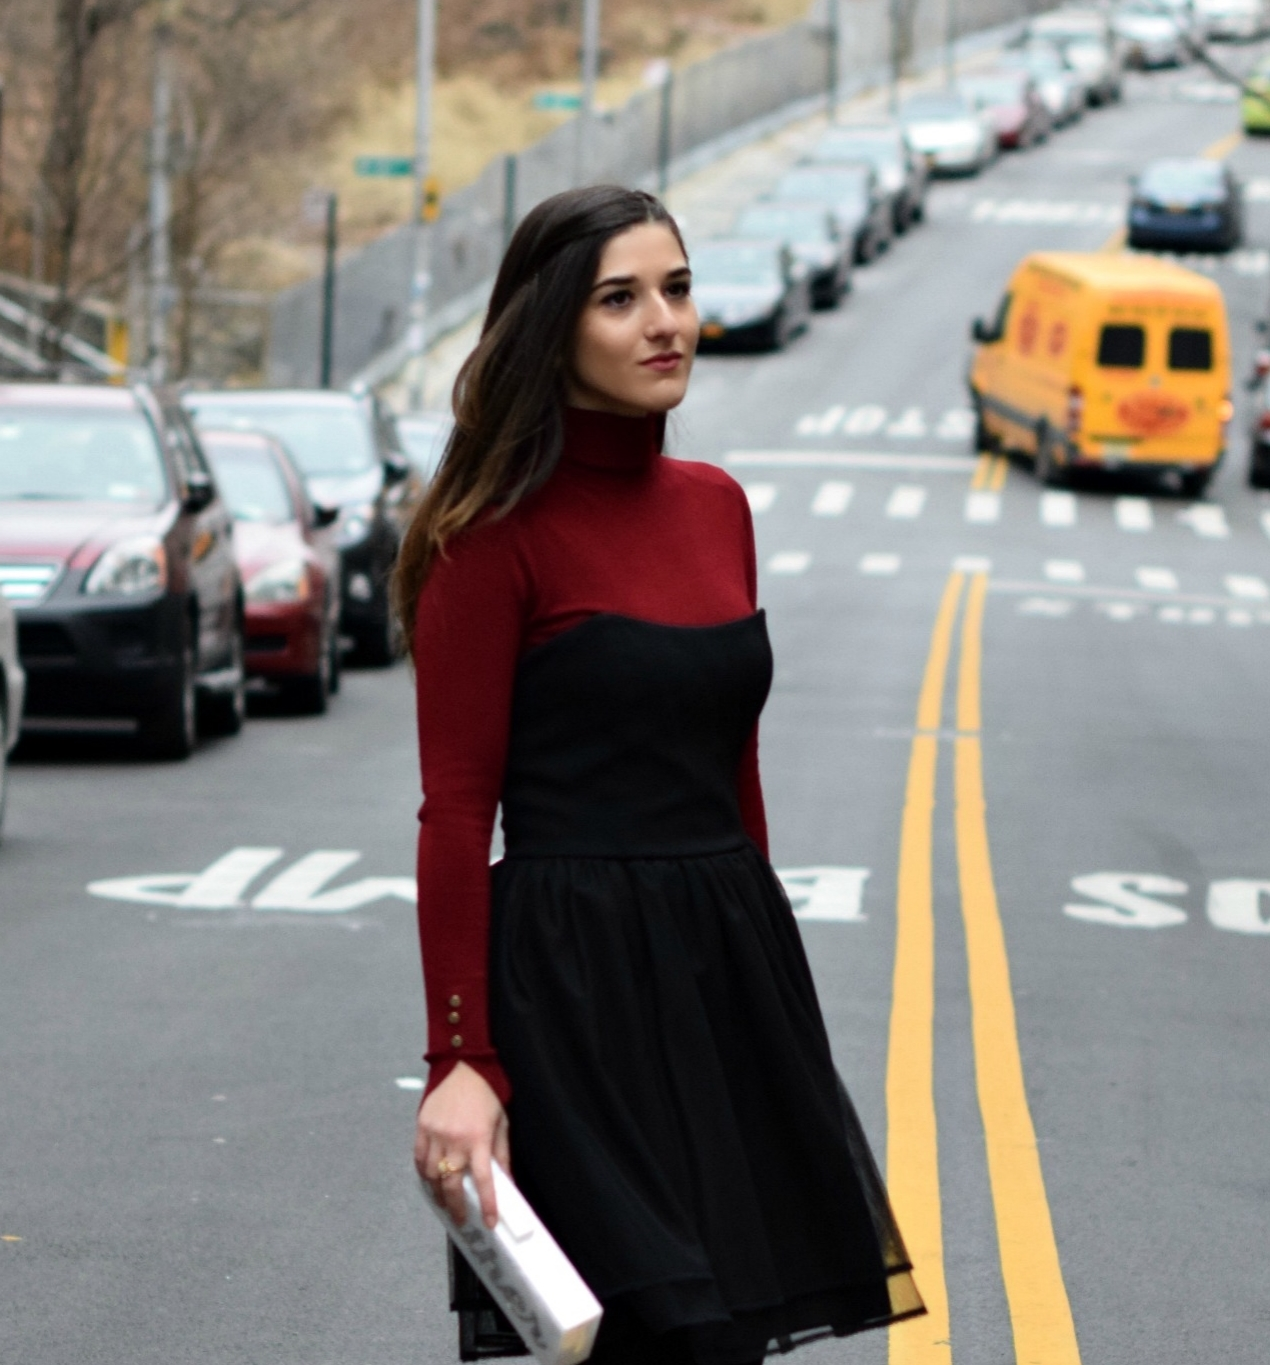 Red Turtleneck Under Strapless Dress Louboutins & Love Fashion Blog Esther Santer NYC Street Style Blogger Black Tights Name Monogrammed Clutch Hair Beautiful Inspo Model Photoshoot Zara Shoes Heels Outfit OOTD Girl Women Shopping Winter New York City.jpg